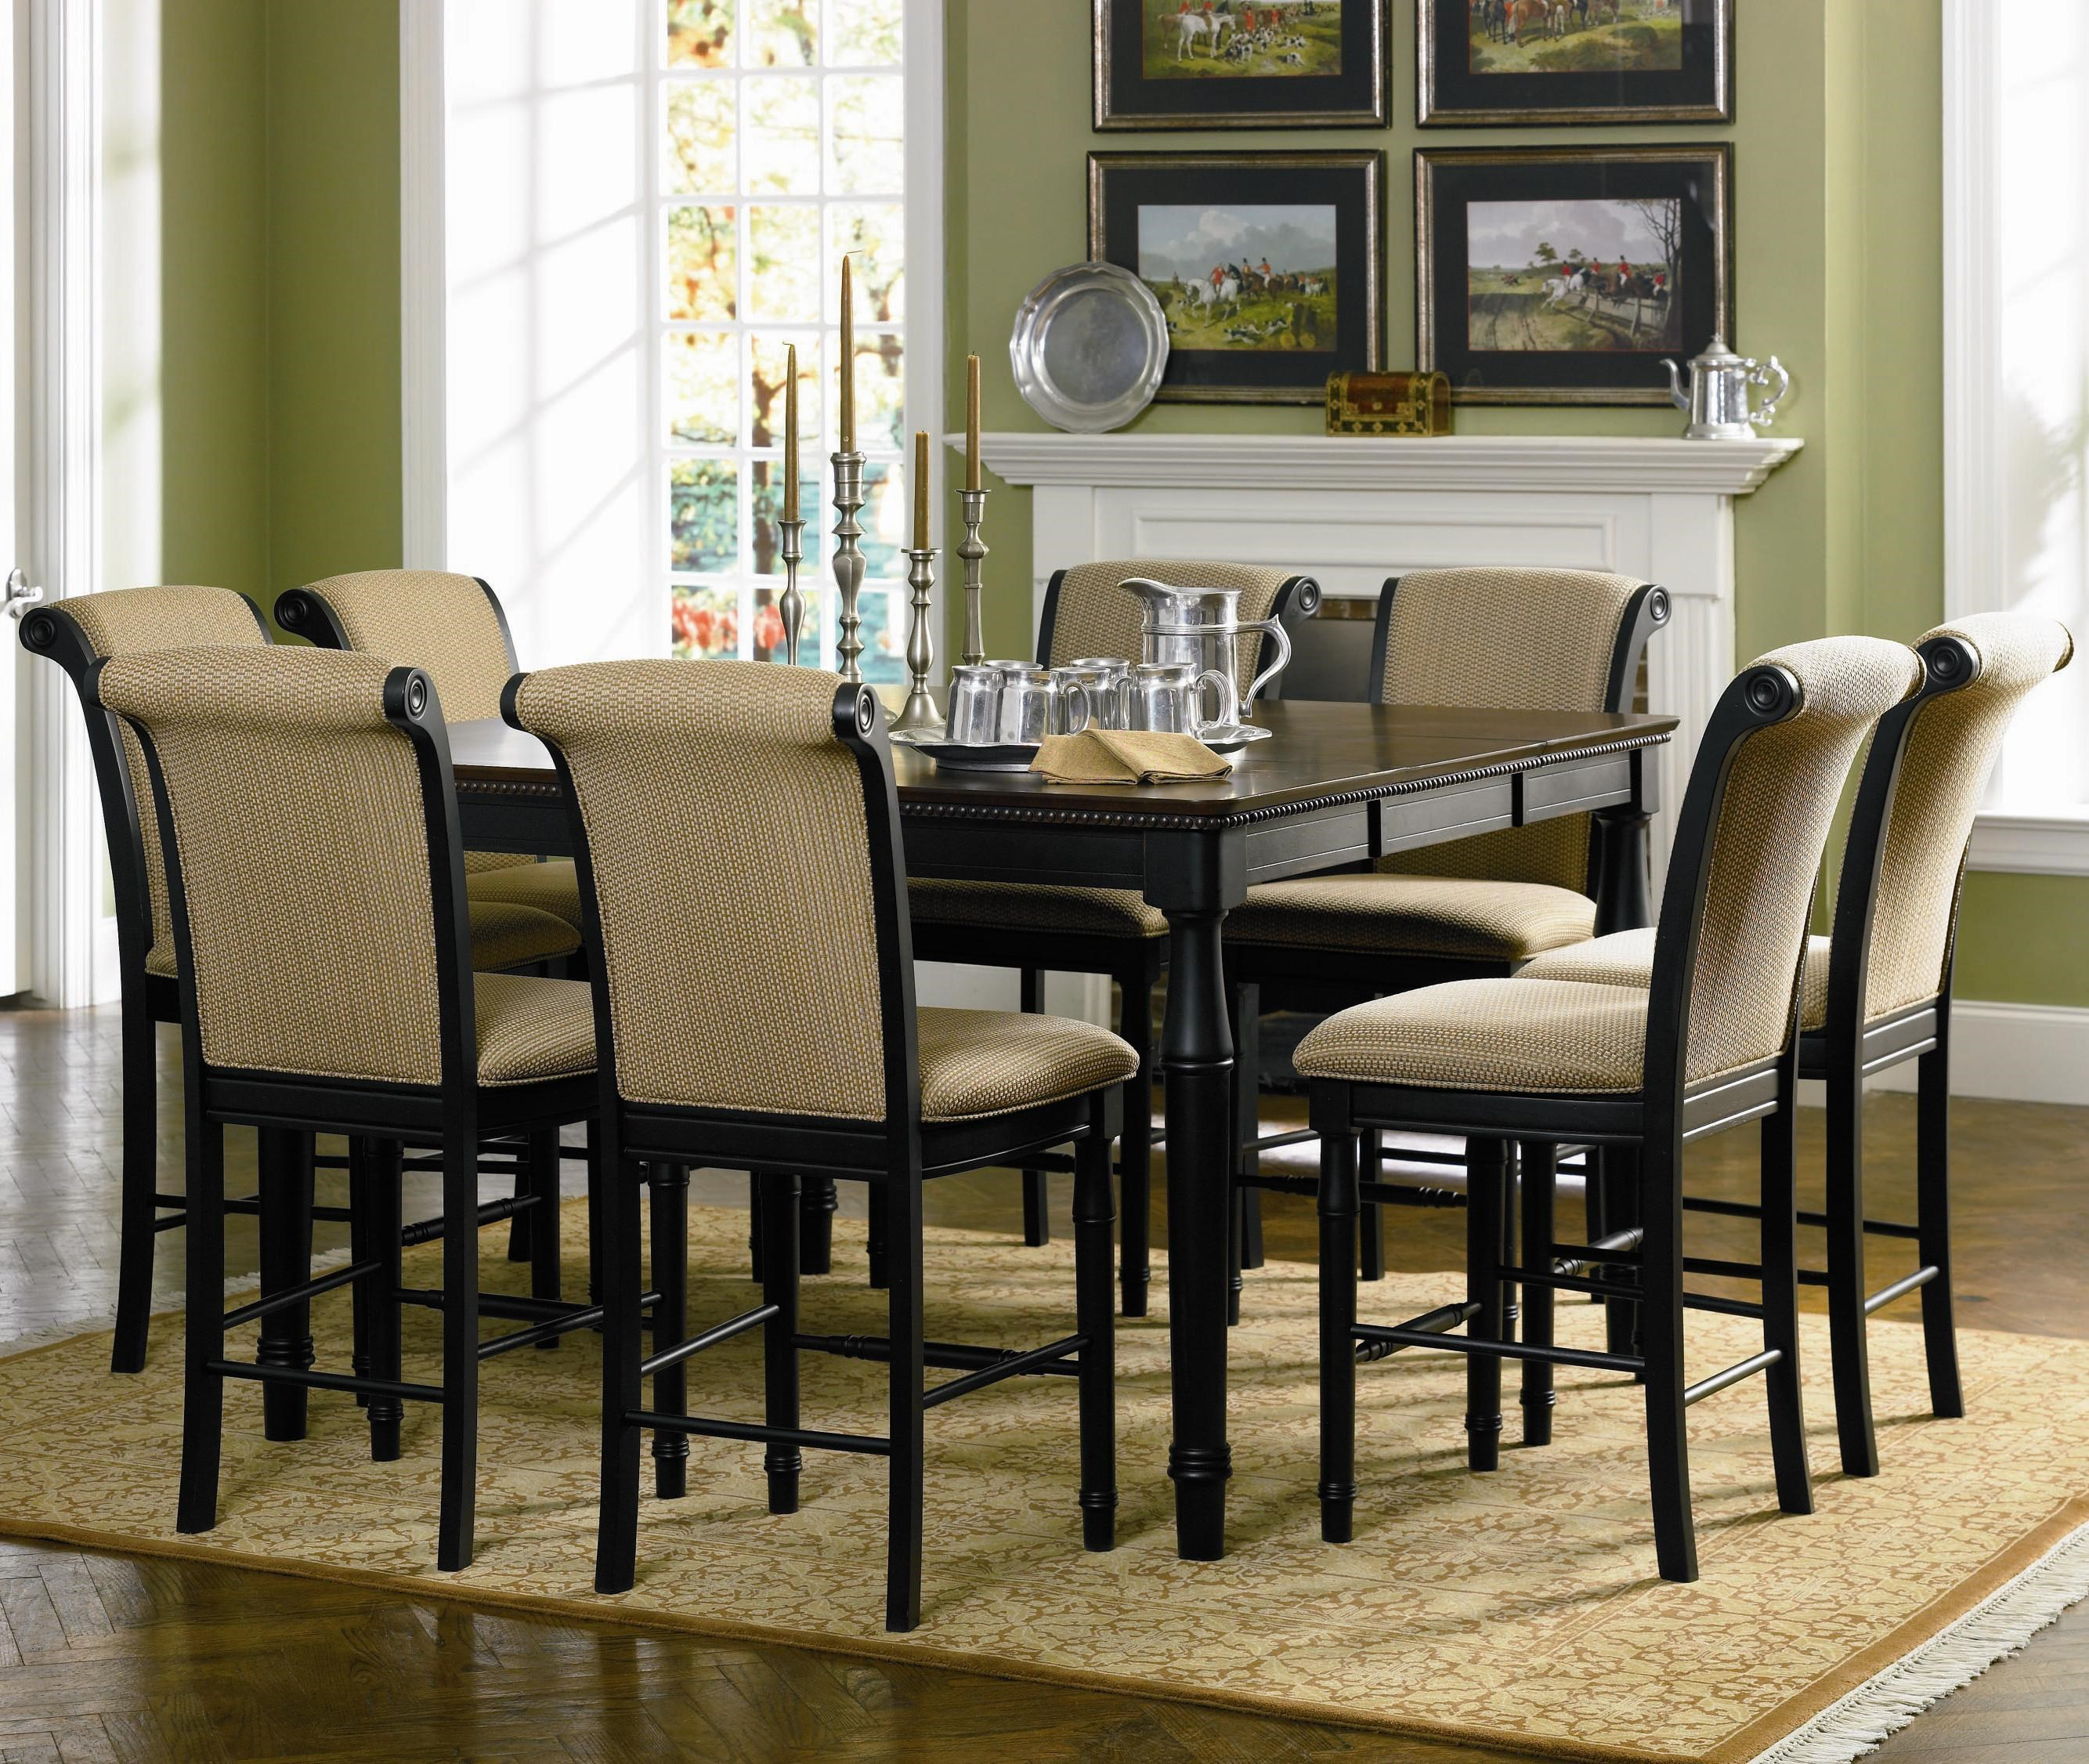 Good Coaster Cabrillo 9 Piece Counter Height Dining Set   Dunk U0026 Bright  Furniture   Pub Table And Stool Sets